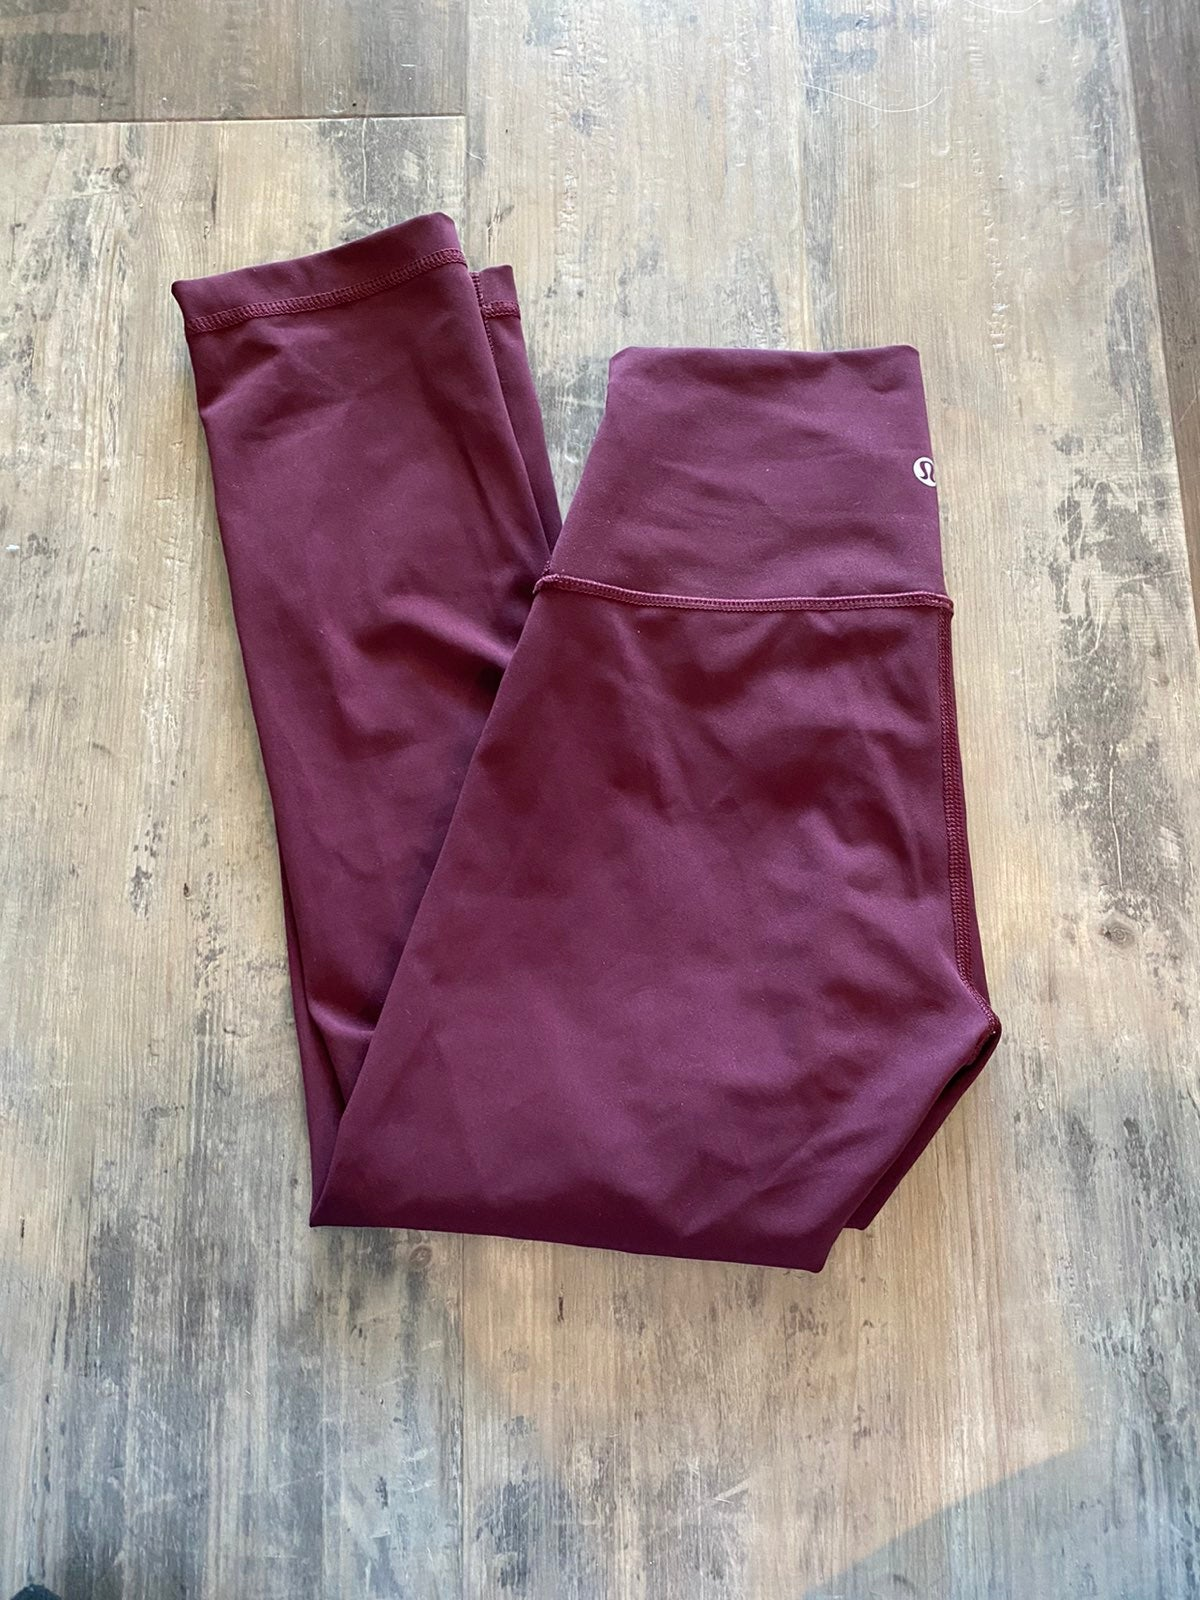 Lululemon wunder under crop 21""